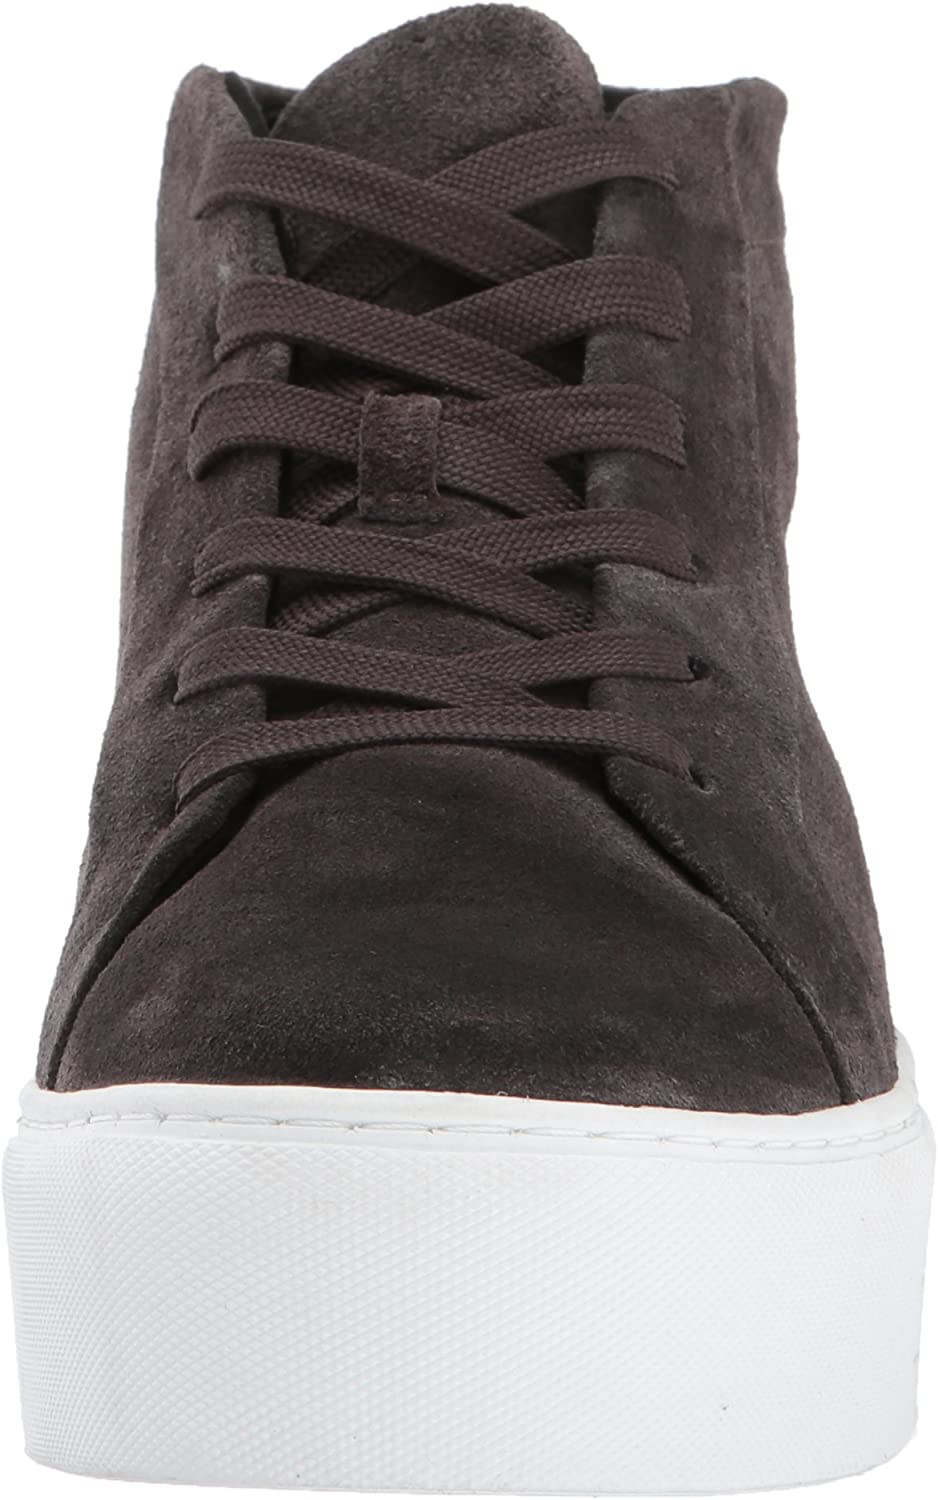 Kenneth Cole New York Women's Janette High Top Lace Up Platform Sneaker Patent Fashion Asphault